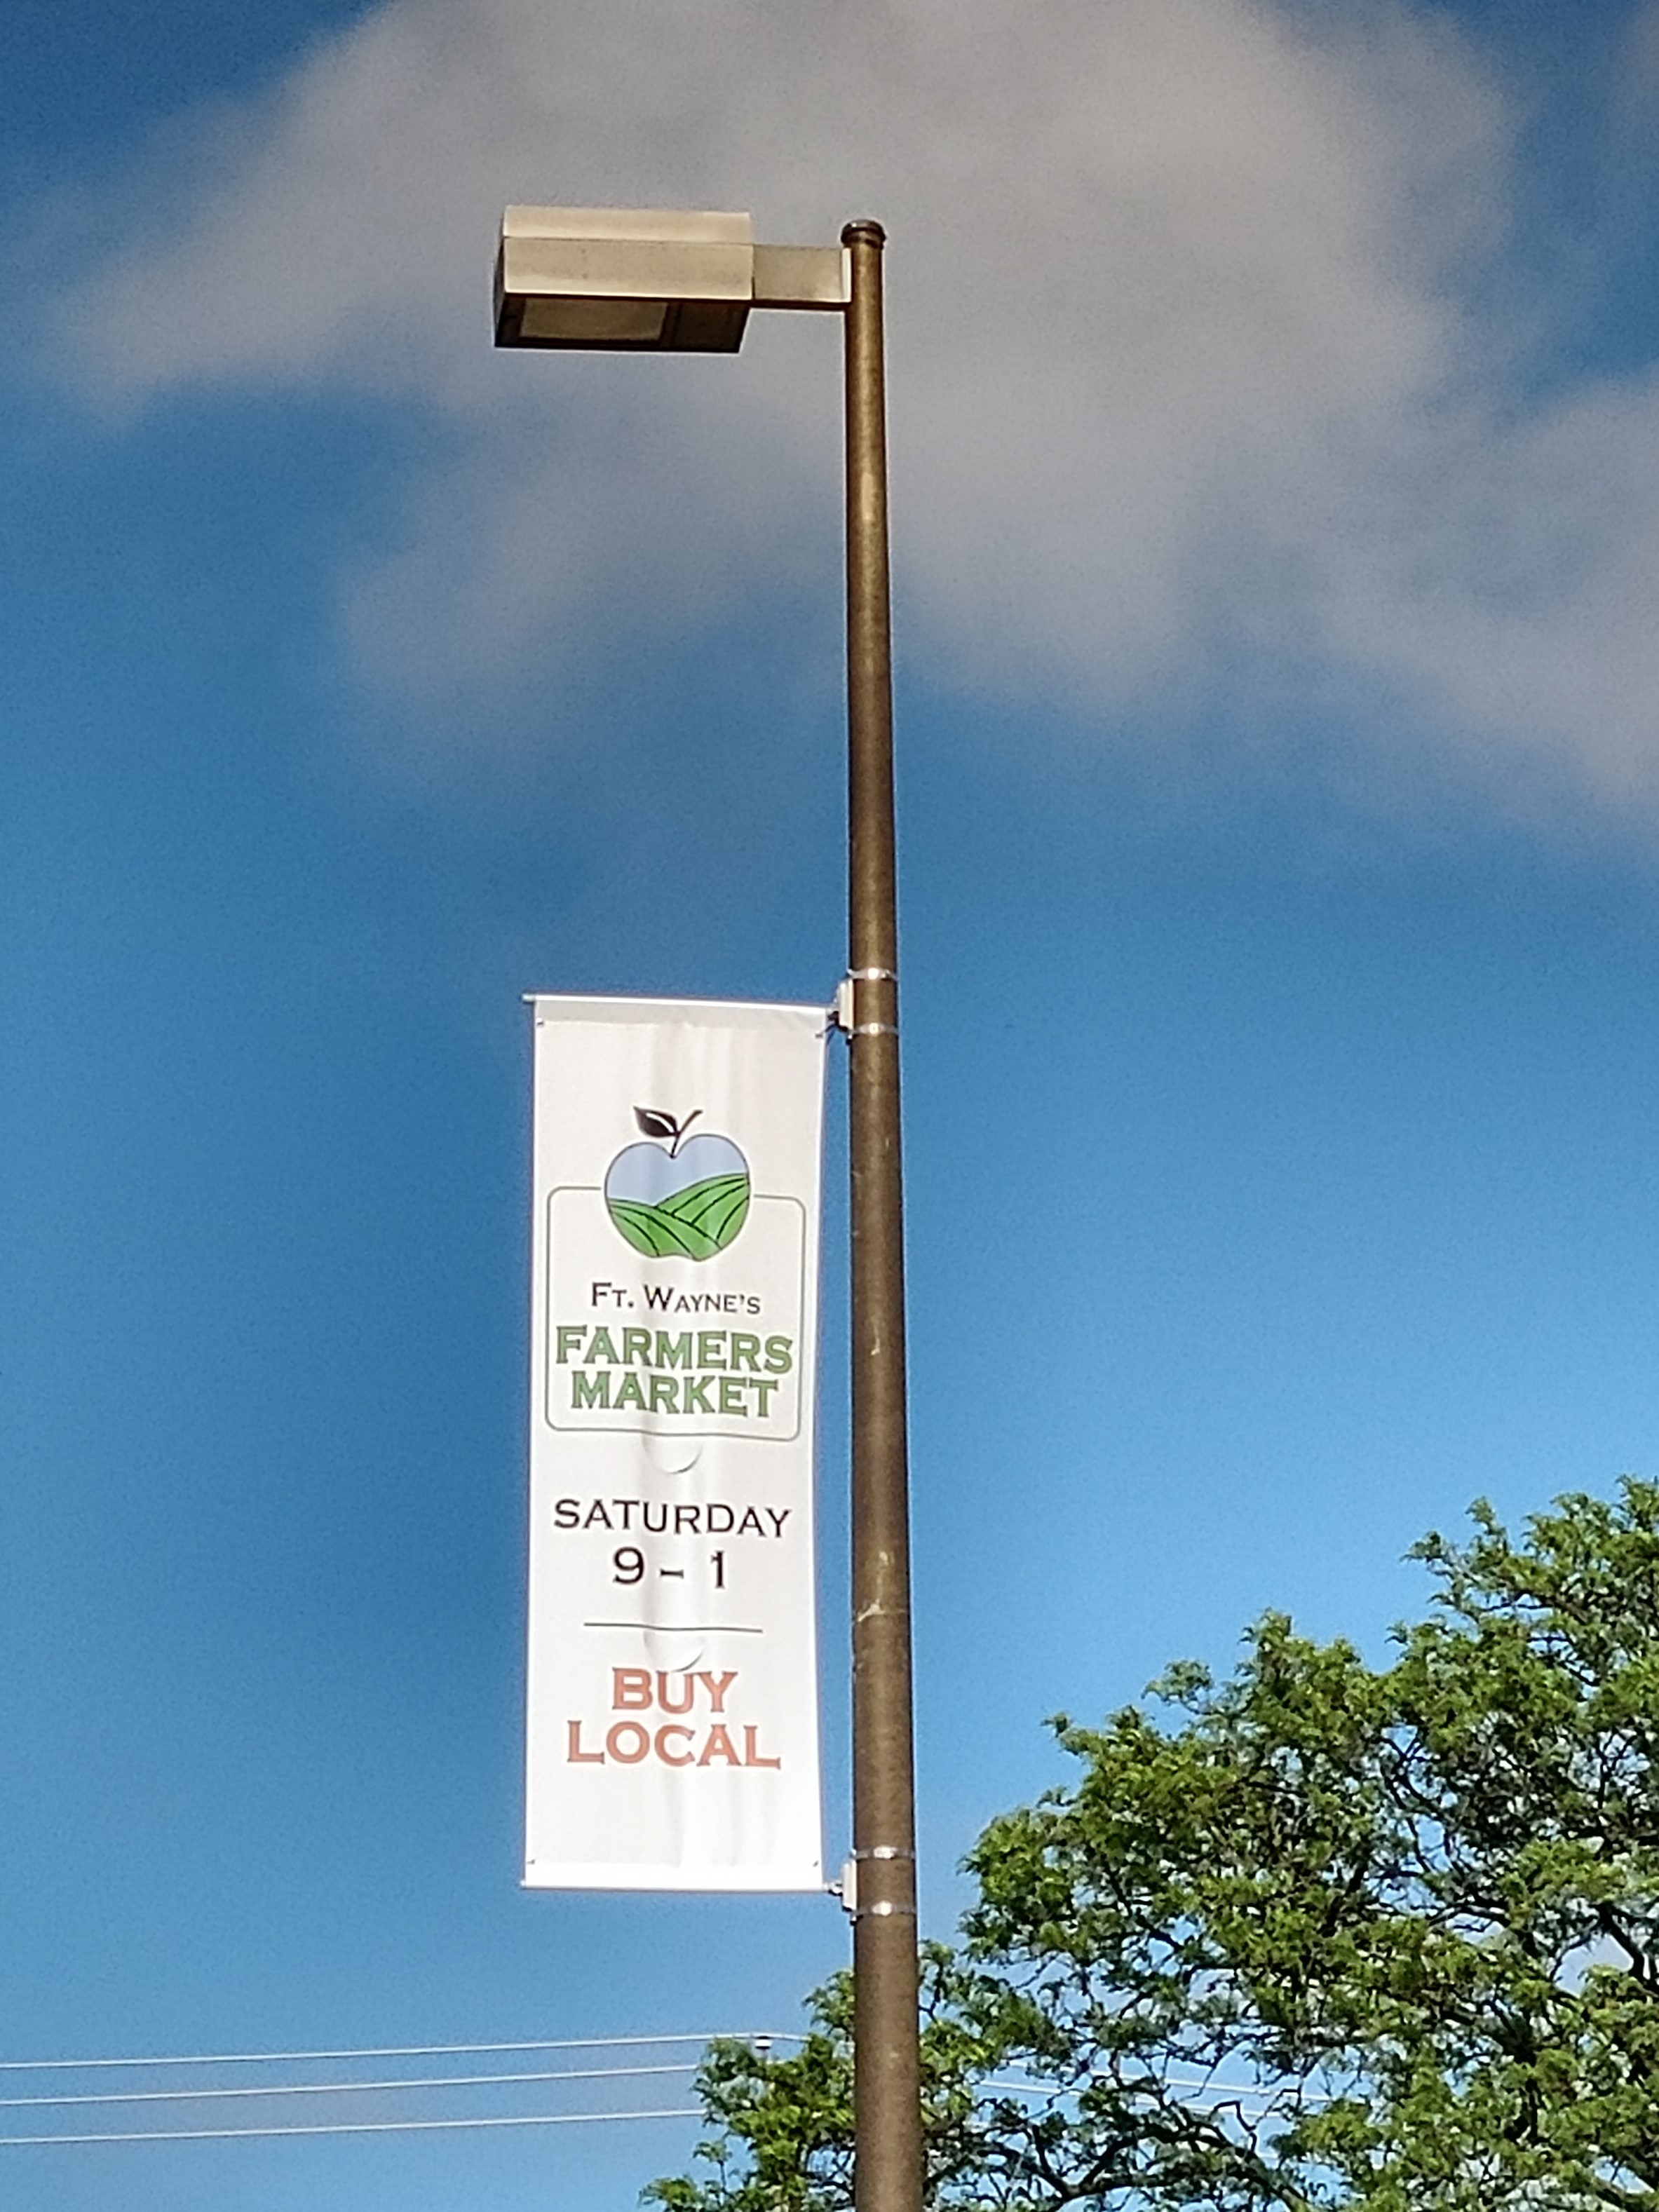 30 FWFM Banners are up to highlight our market throughout downtown Fort Wayne